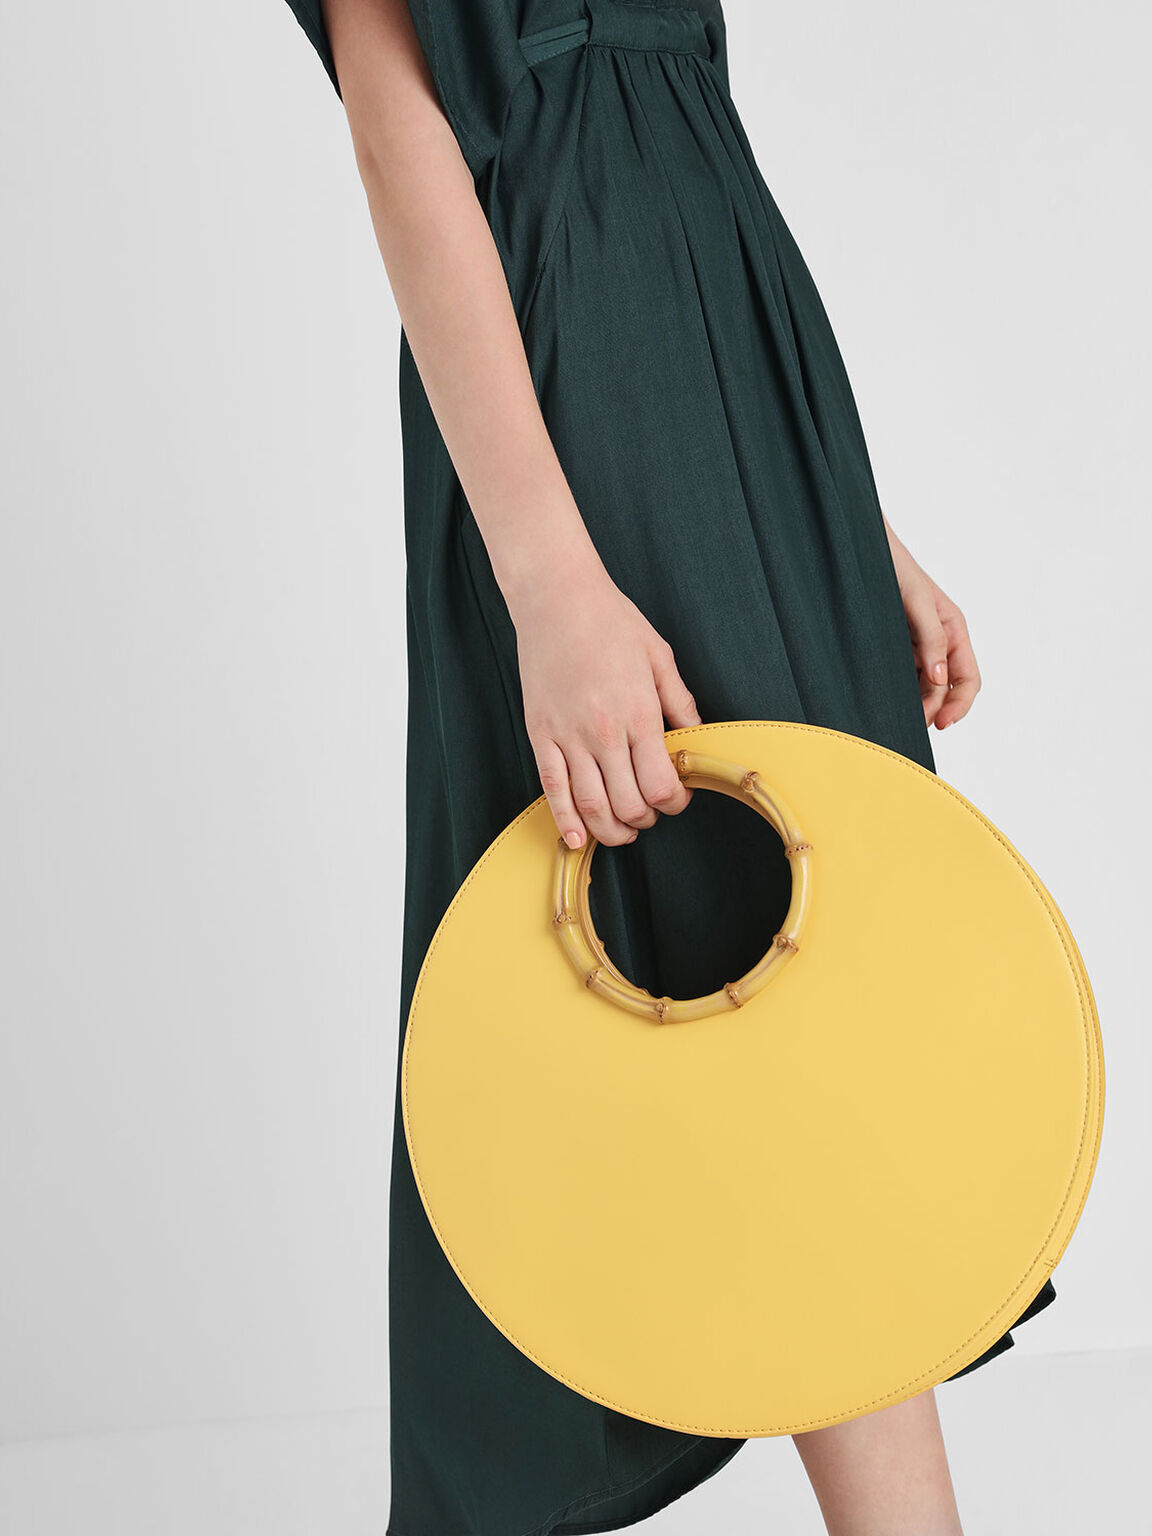 Circular Bag, Yellow, hi-res